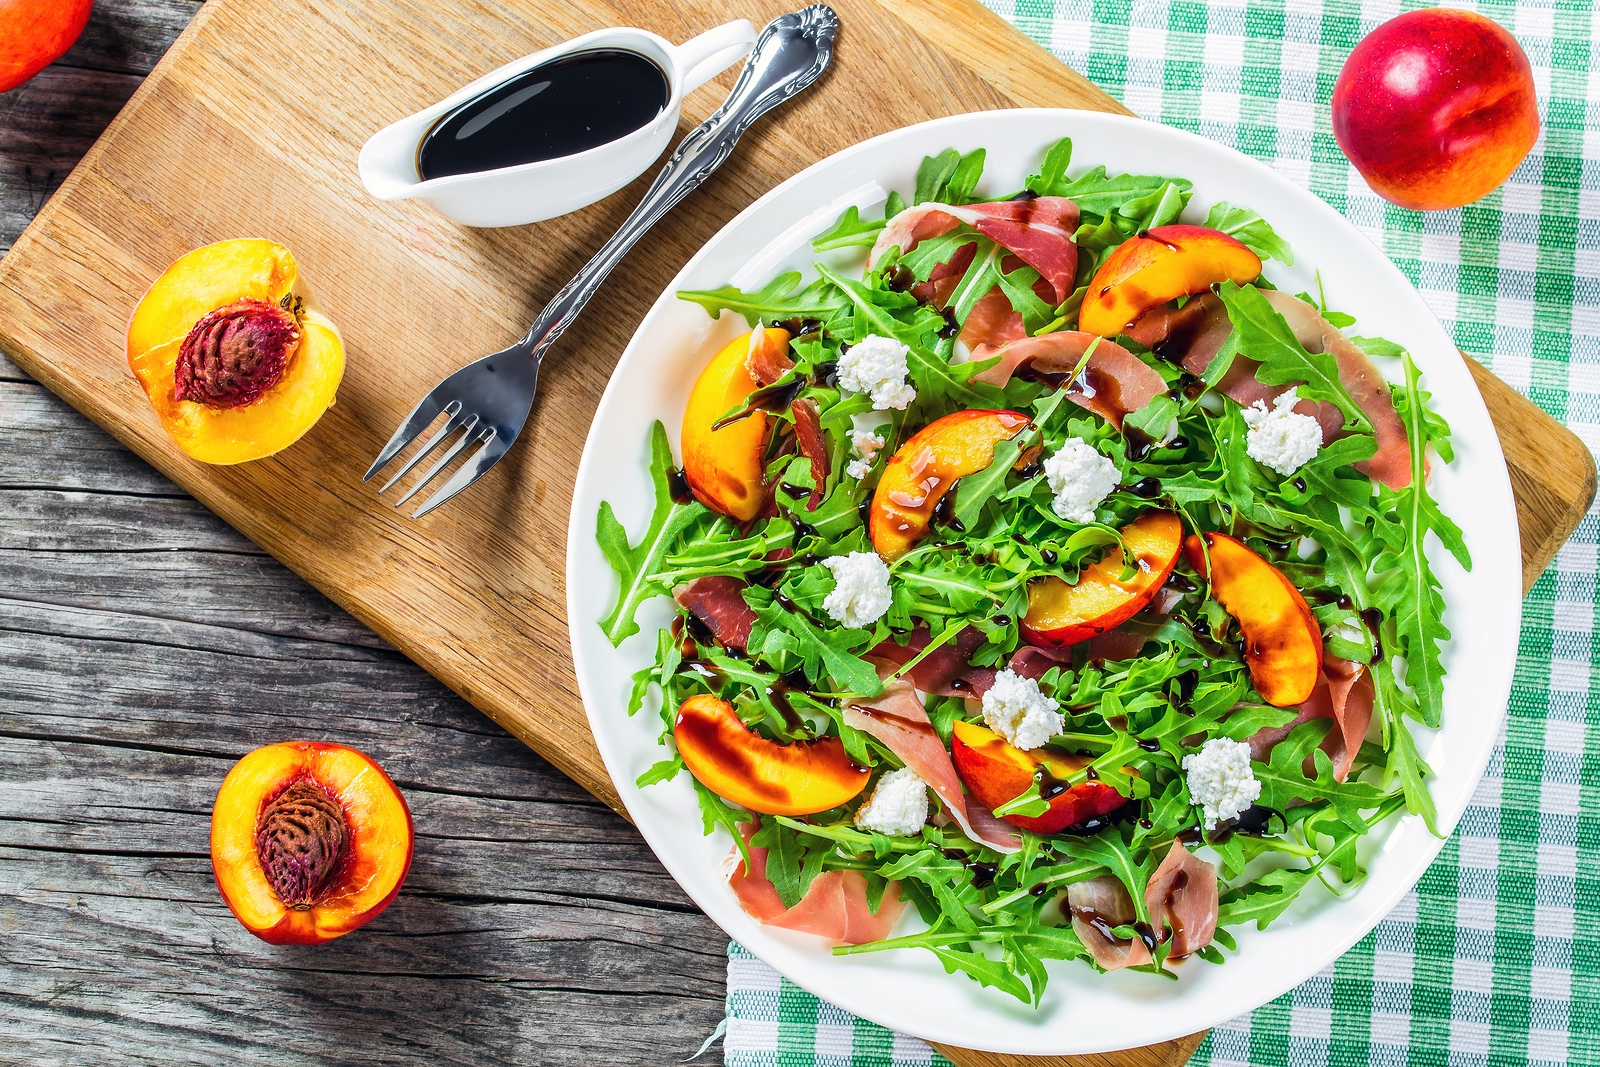 peaches arugula prosciutto and goat cheese salad with balsamic vinegar